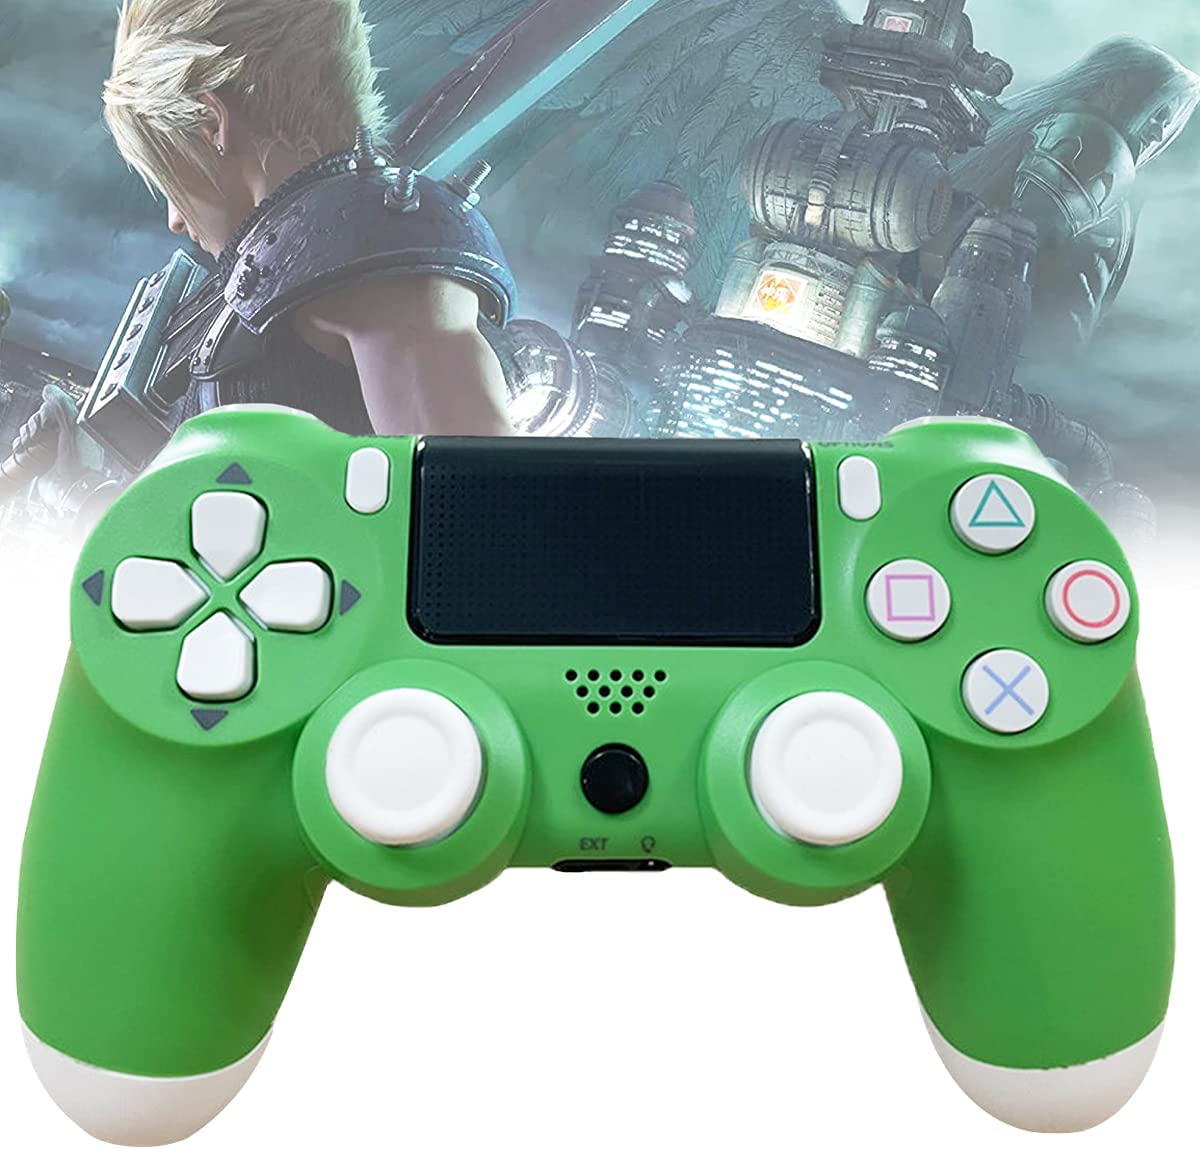 Wireless Controller for Playstation 4, Gamepad Joystick for DualShock 4/PS4/Pro/Slim Console with Headset Jack/Dual Vibration/Speaker/Touch Pad/Six-axis Motion Control with Charging Cable, Green